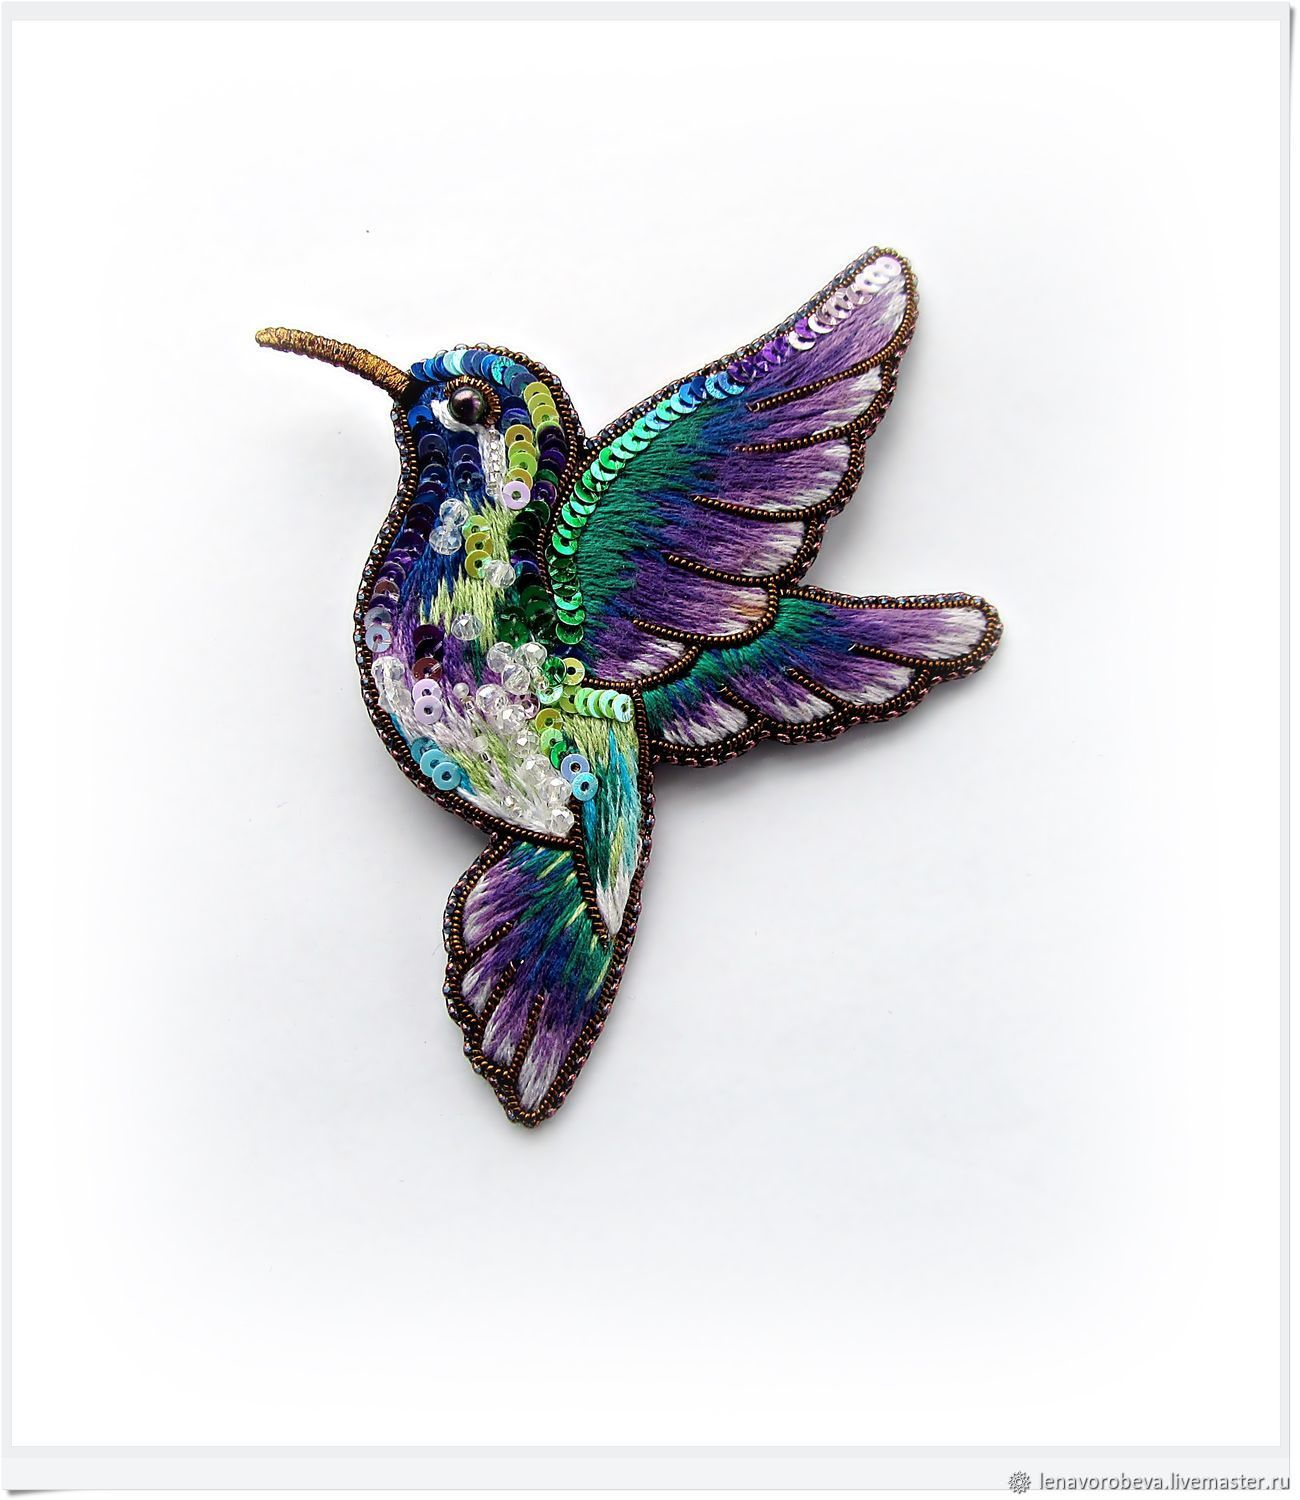 Brooch 'Bird of happiness', Brooches, Voronezh,  Фото №1